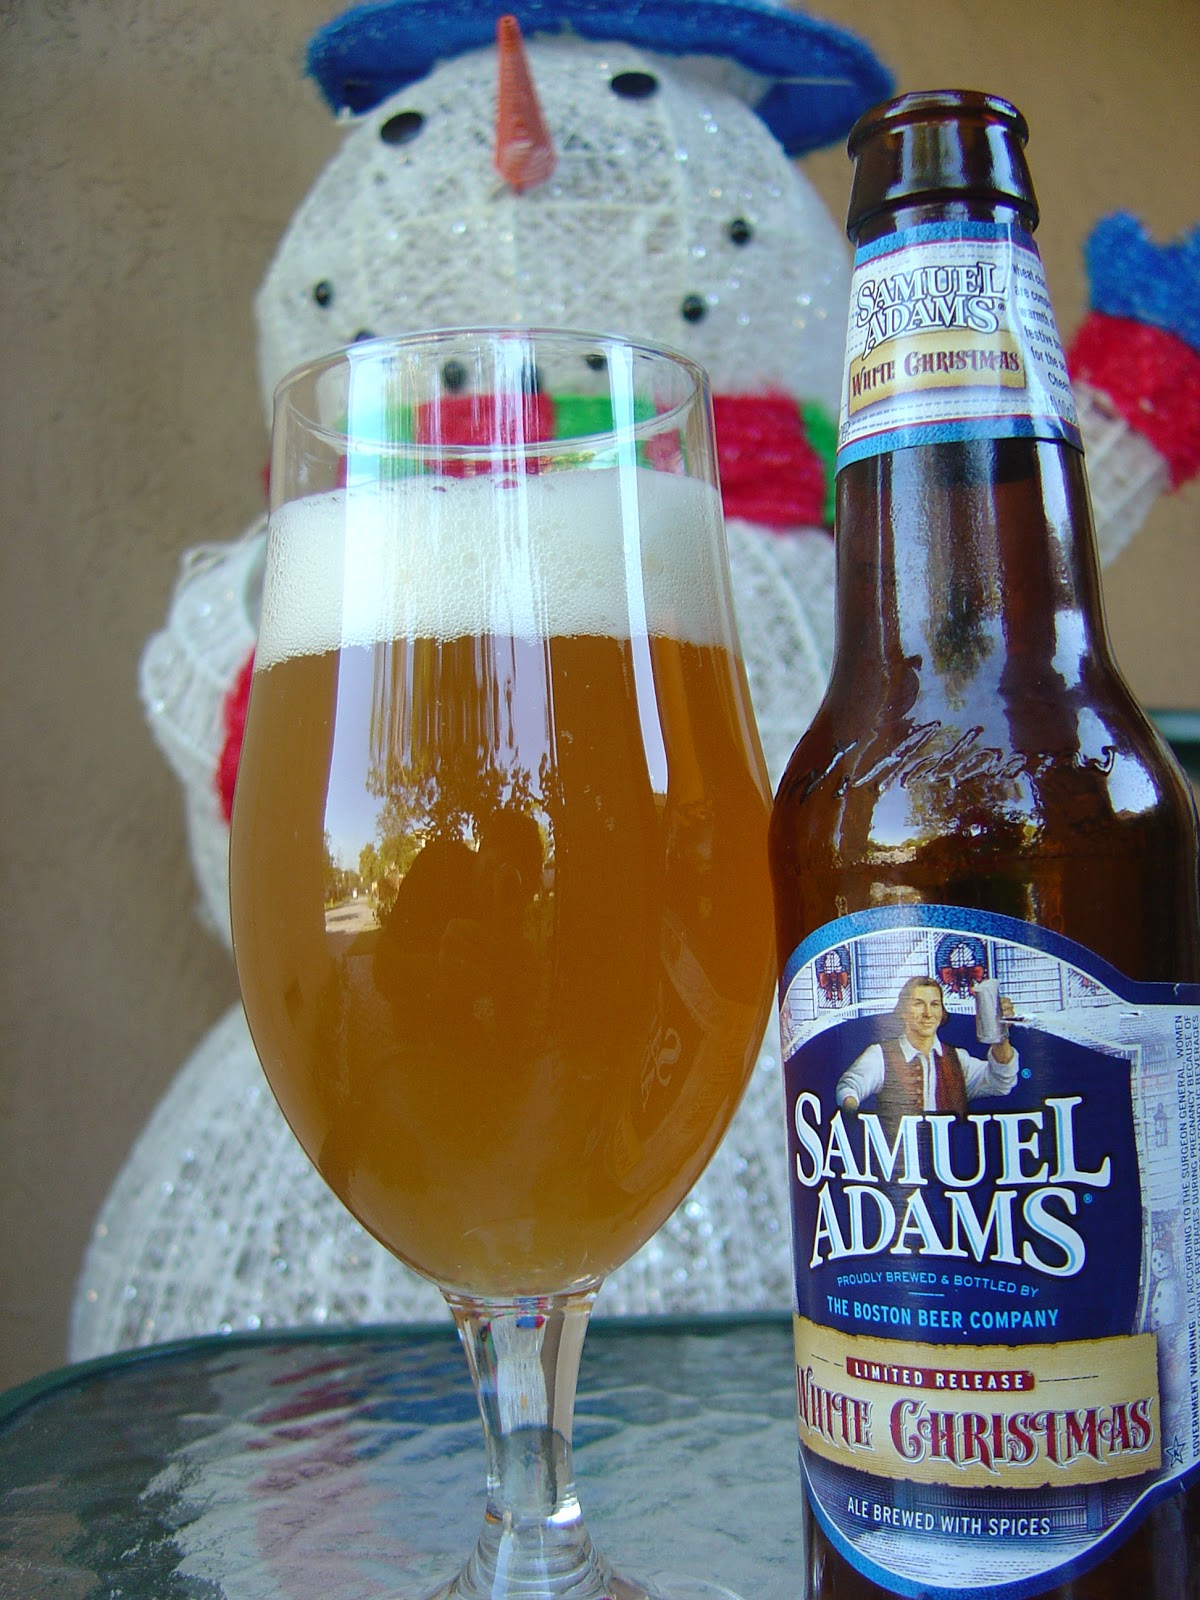 white christmas you see what i did there yep im drinking samuel adams white christmas brewed by the boston beer company in boston cincinnati or - White Christmas Sam Adams